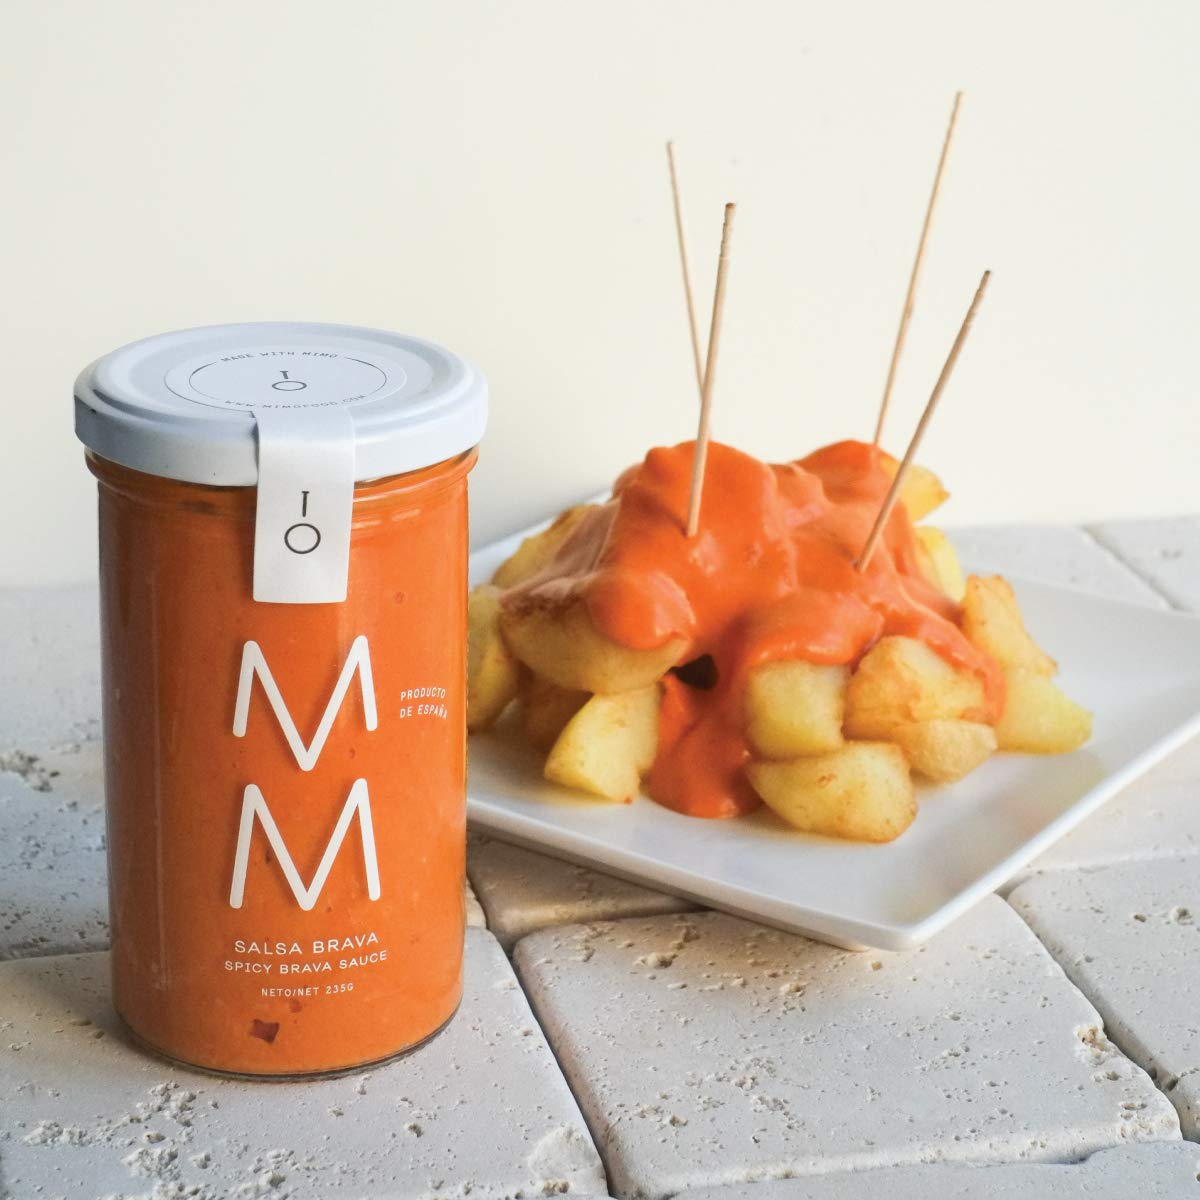 MM All the Salsa Gift Box | Spanish Artisan Food Collection: Amazon.com: Grocery & Gourmet Food